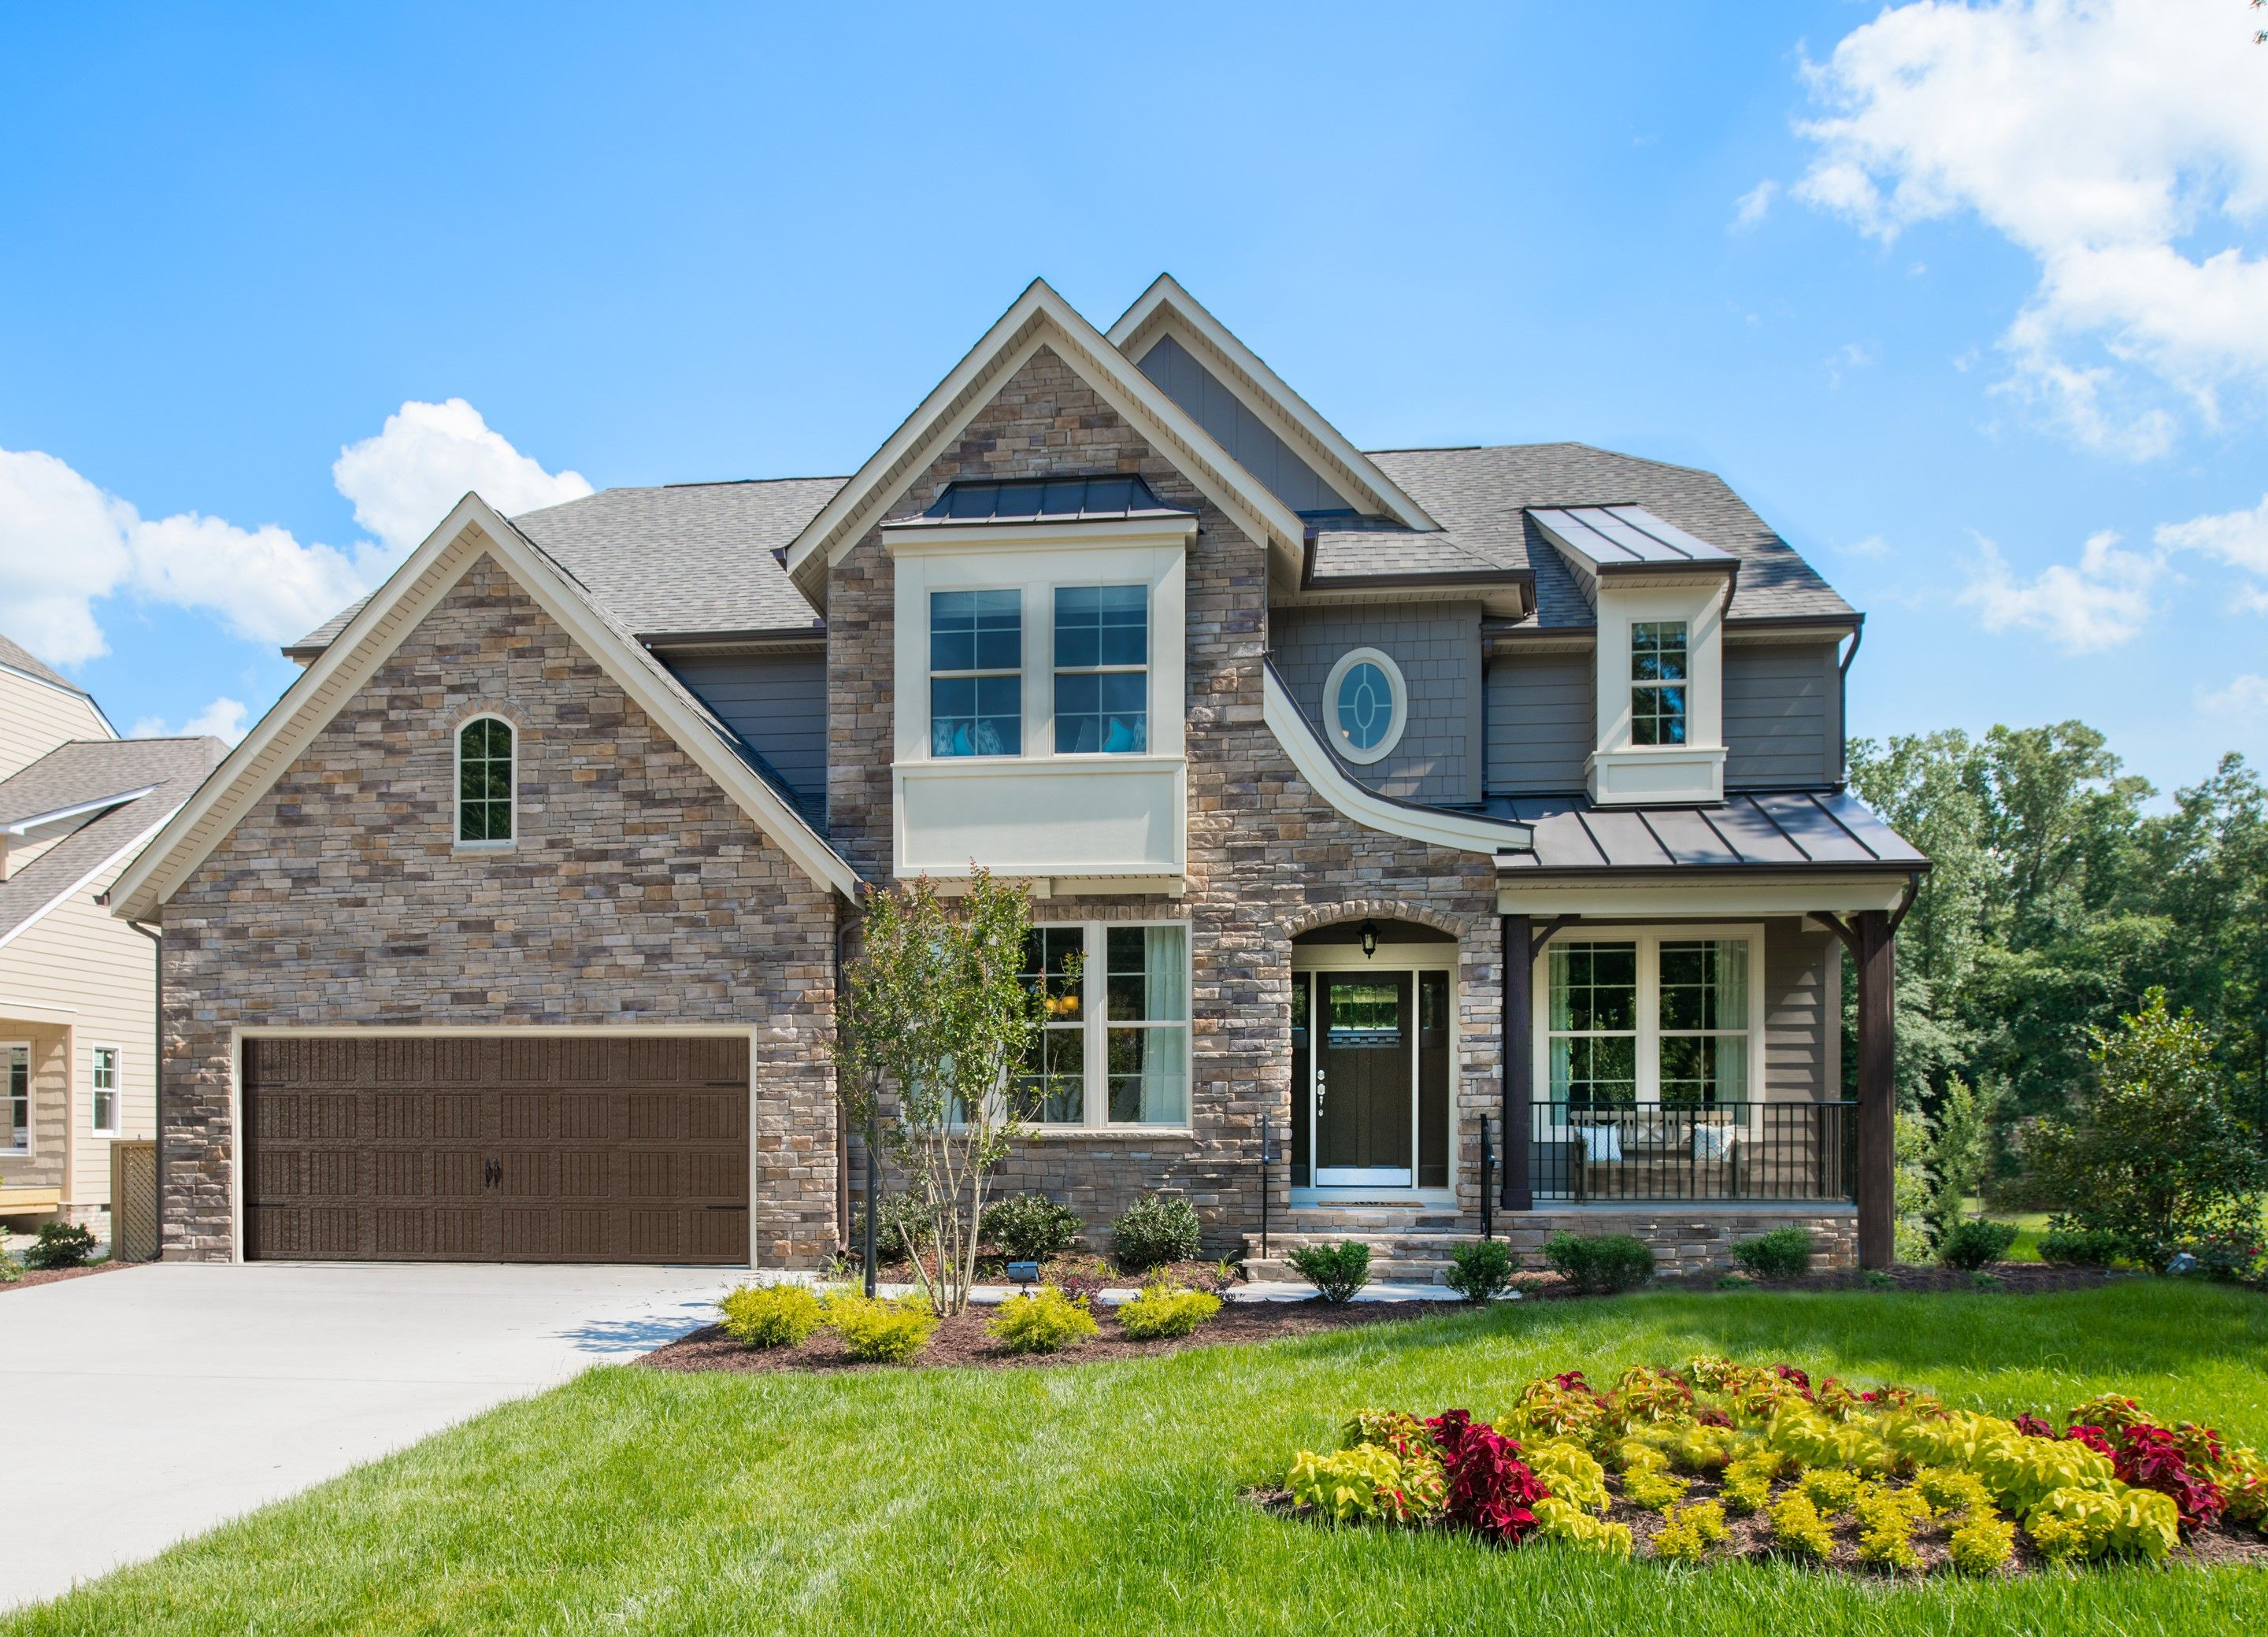 Hillcrest plan midlothian virginia 23112 hillcrest for Cost to build a house in maryland